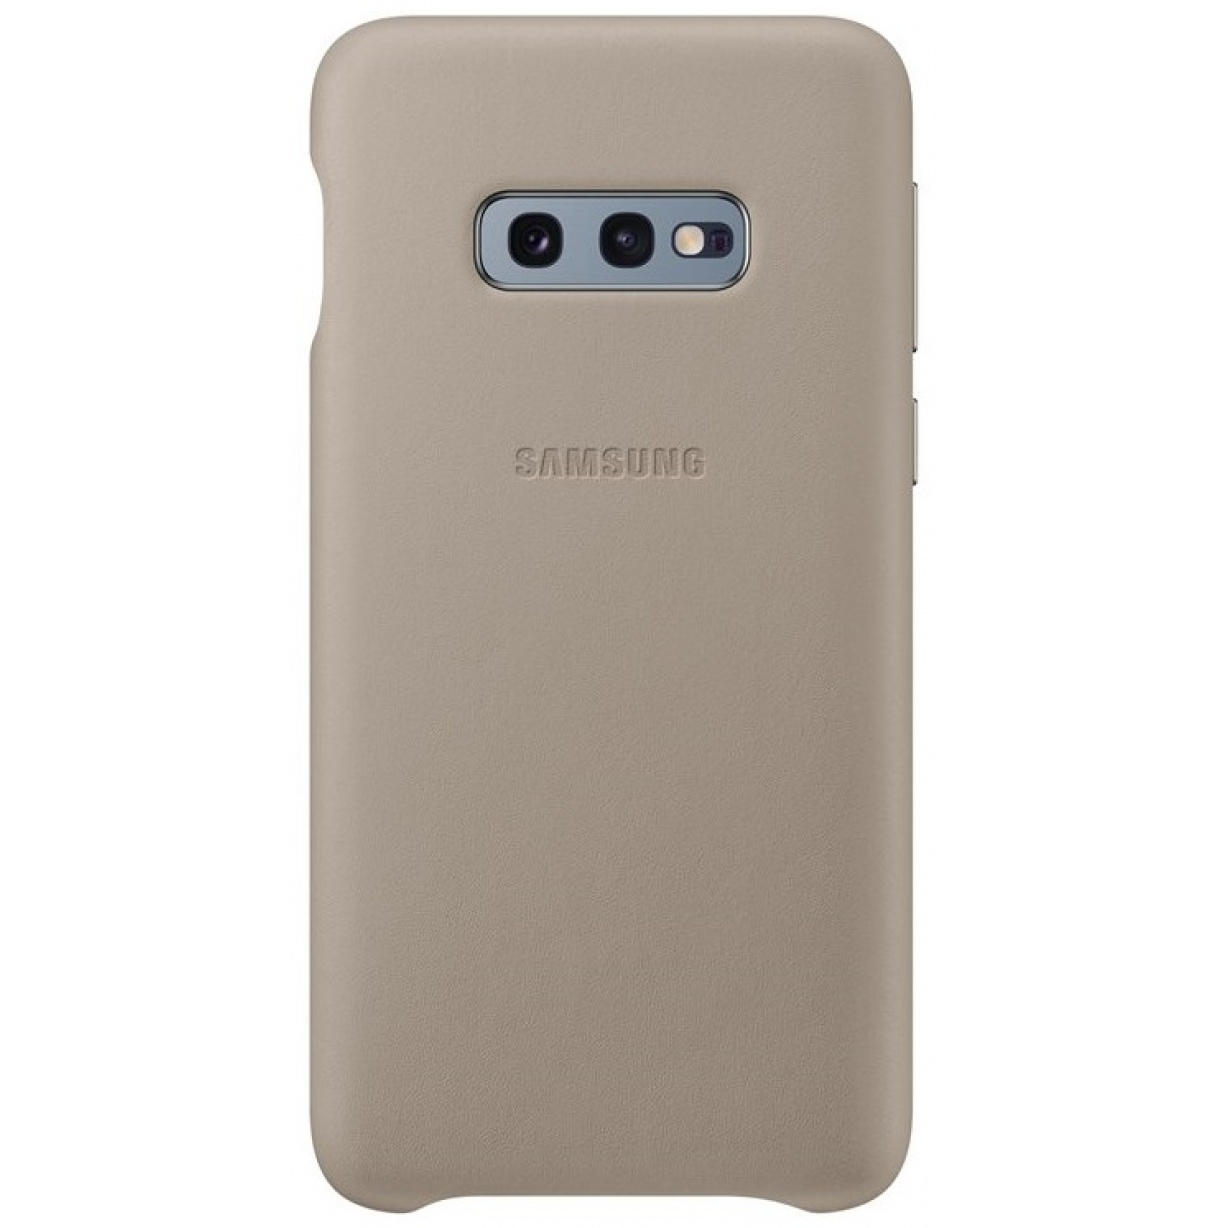 Nugarėlė G970 Samsung Galaxy S10e Leather Cover Grey